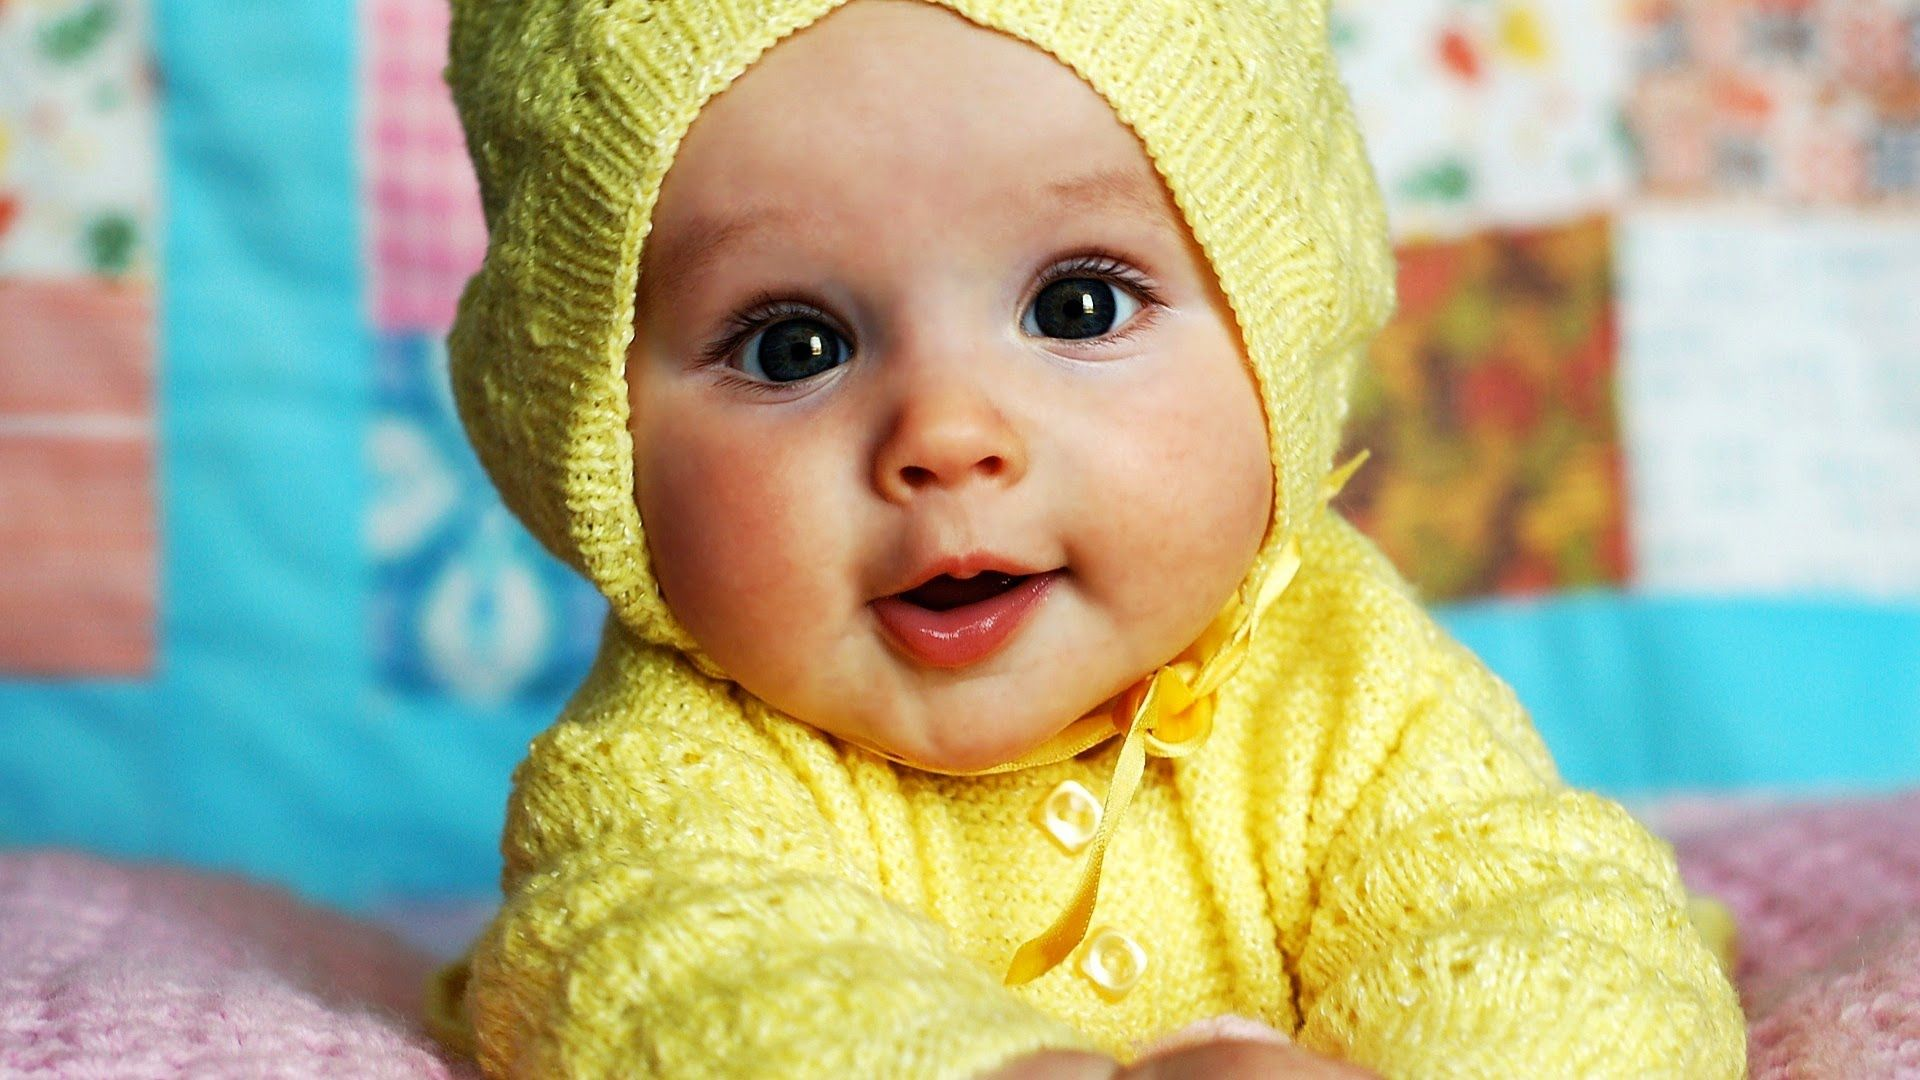 Cute Baby Boy Pictures Wallpapers Cute Baby Wallpaper Pretty Baby Girl Names Cute Baby Pictures